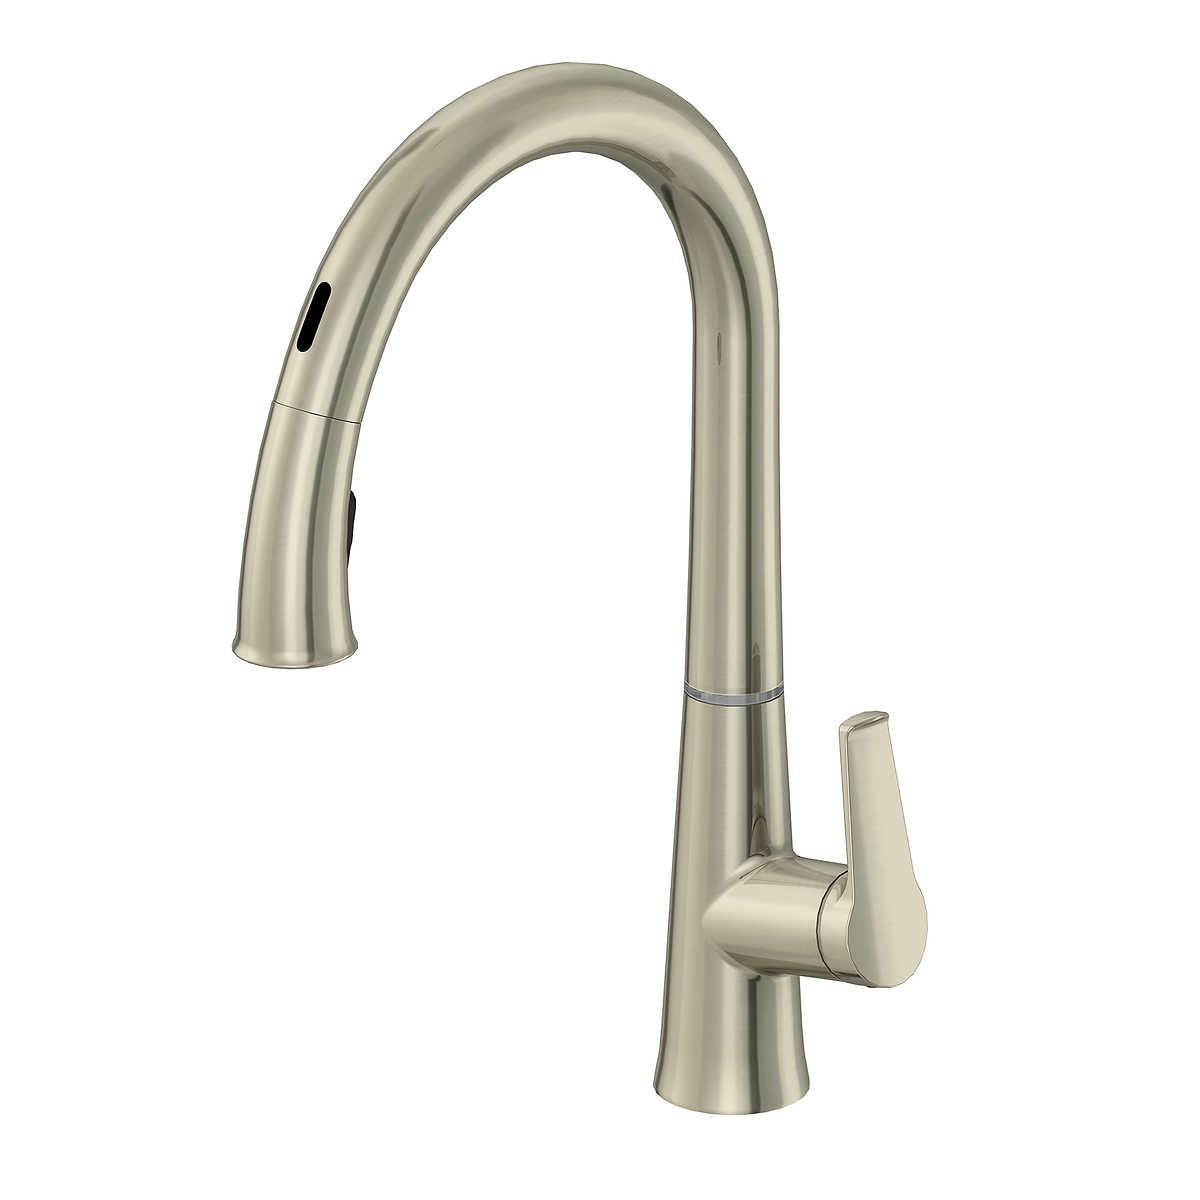 Removing Kitchen Faucet: How To Remove Moen Kitchen Faucet